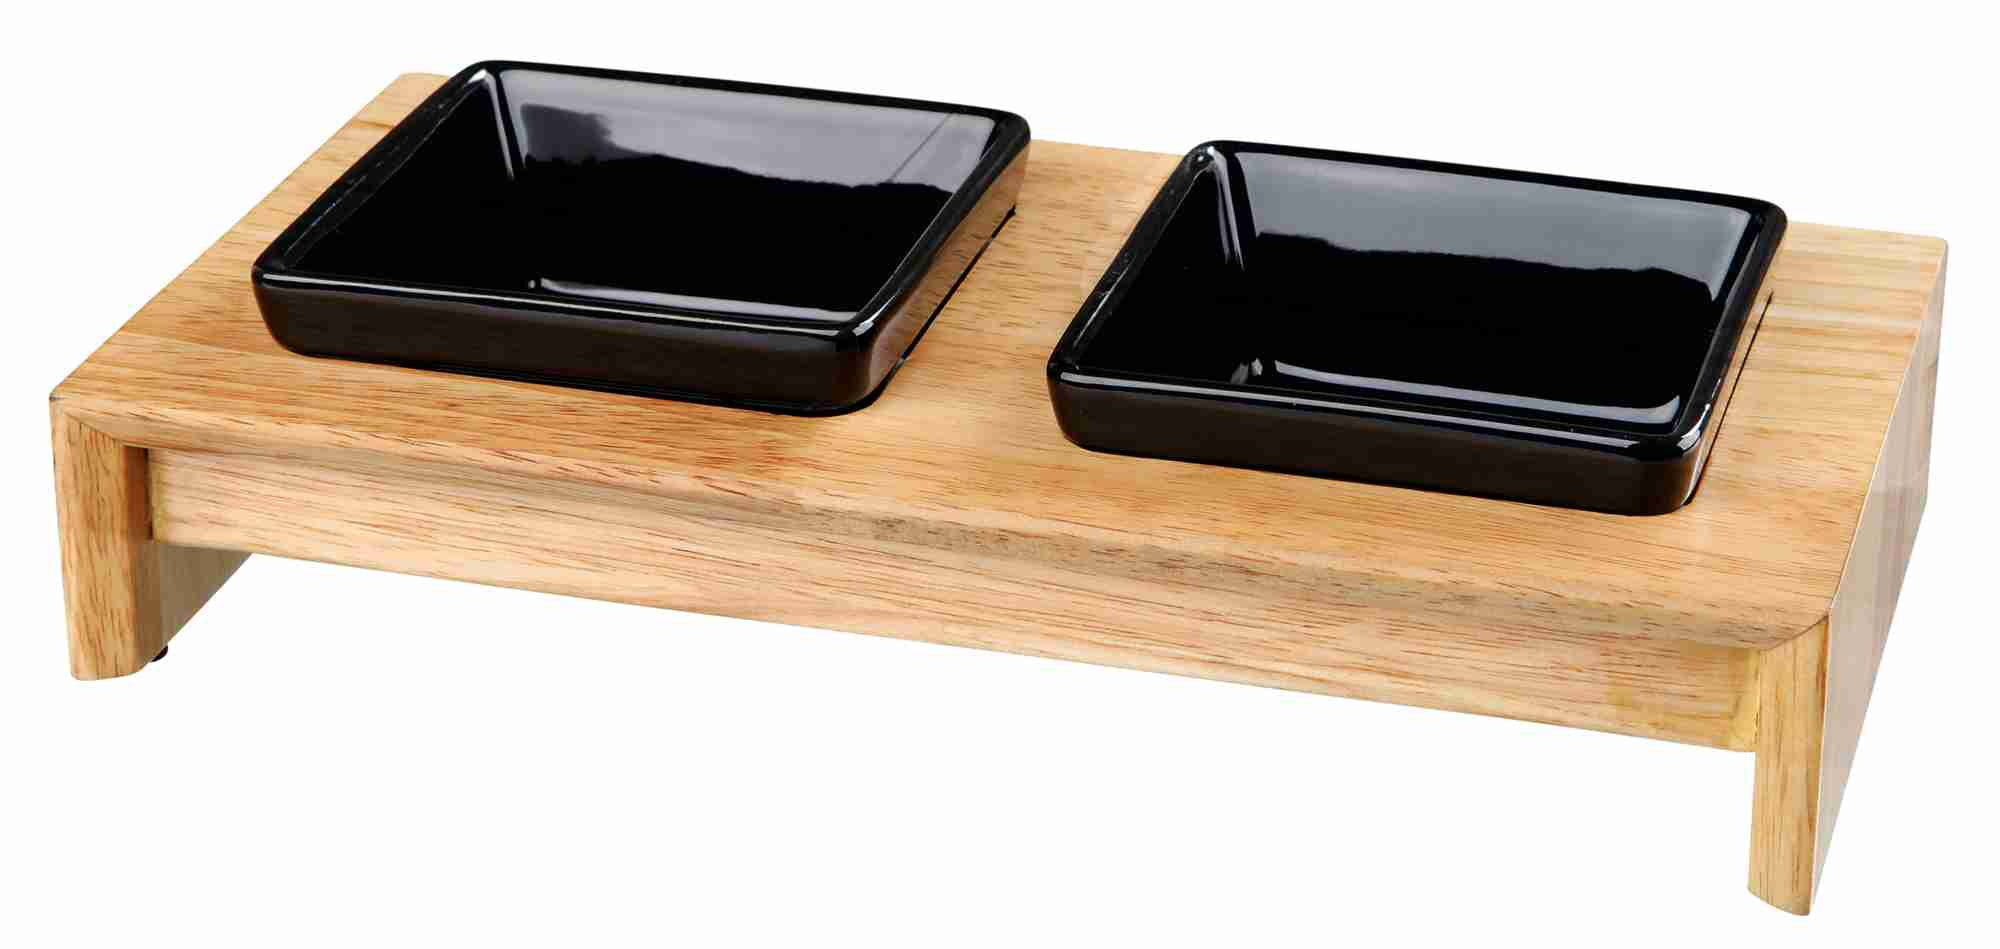 Ceramic Bowl Set - Wooden Stand